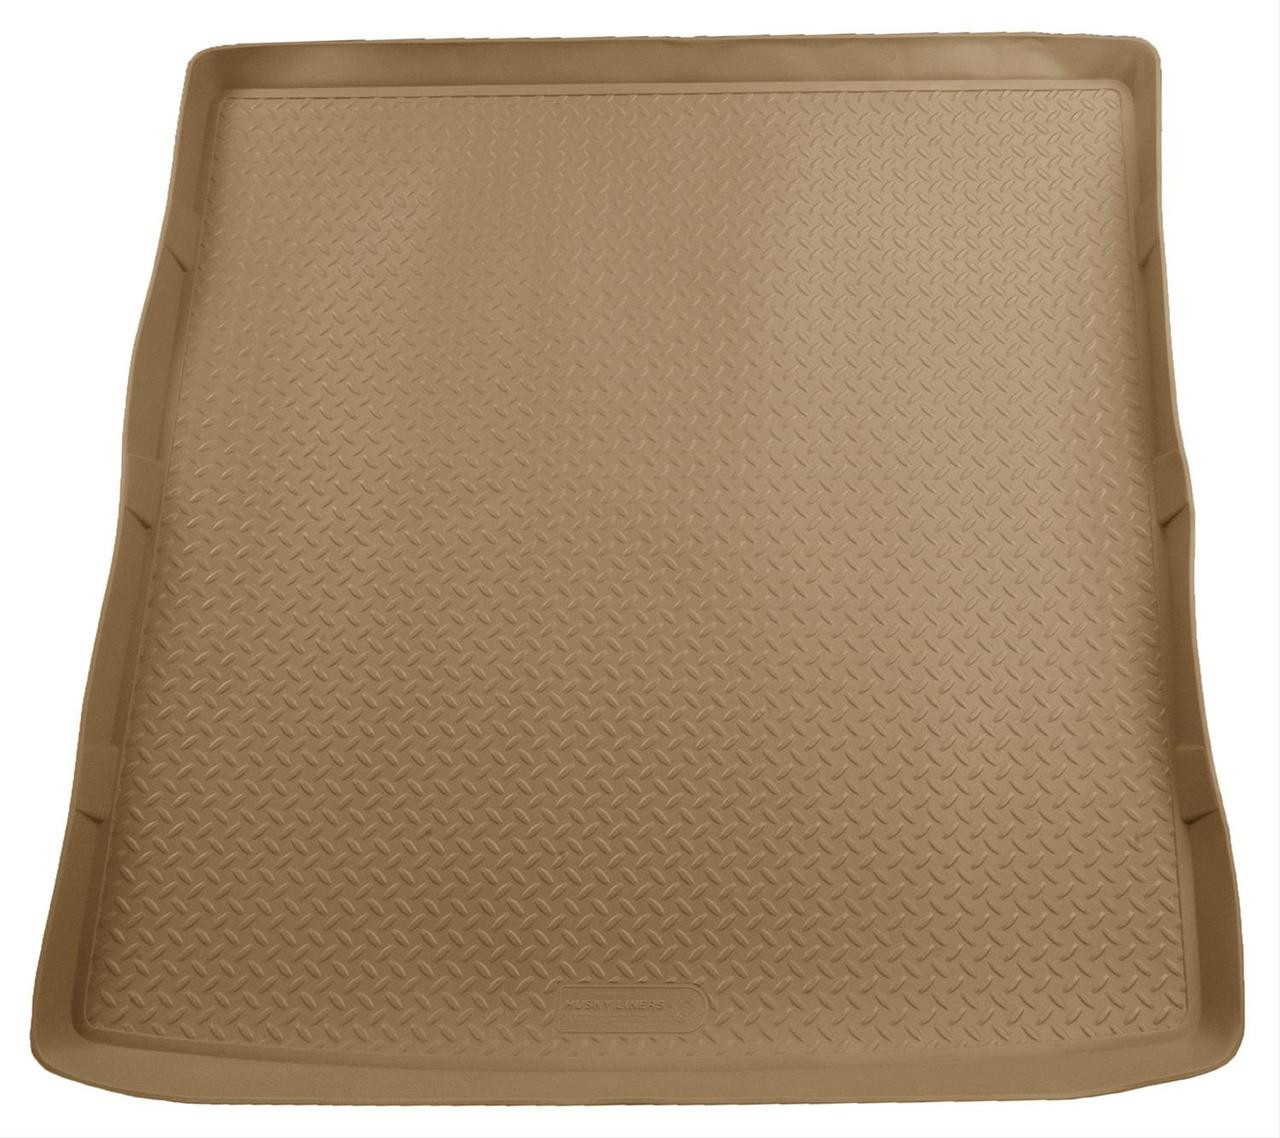 07-16 ACADIA/OUTLOOK (BEHIND 2ND SEAT - FITS OVER FOLDED FLAT 3RD ROW SEAT) REAR LINER TAN